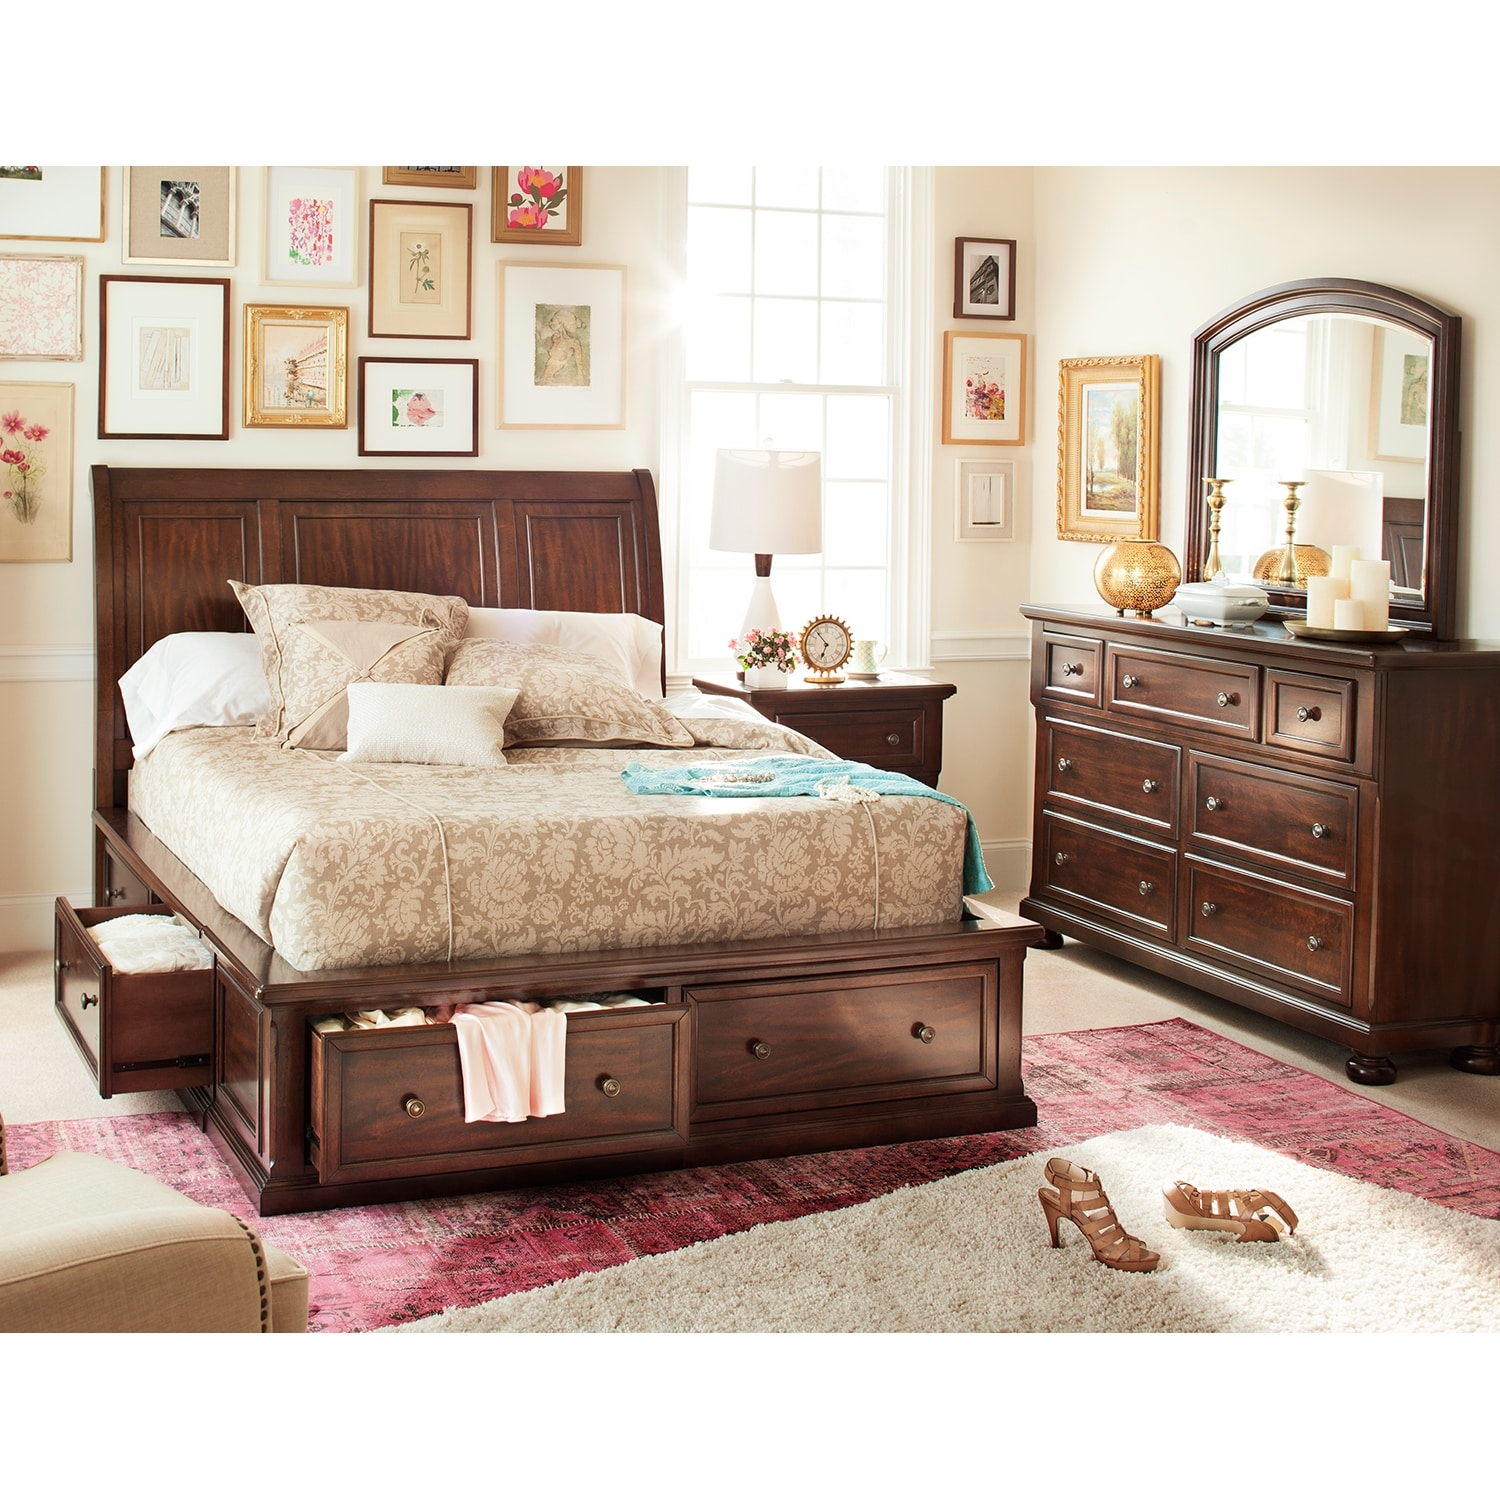 Hanover 5 Pc. Queen Storage Bedroom